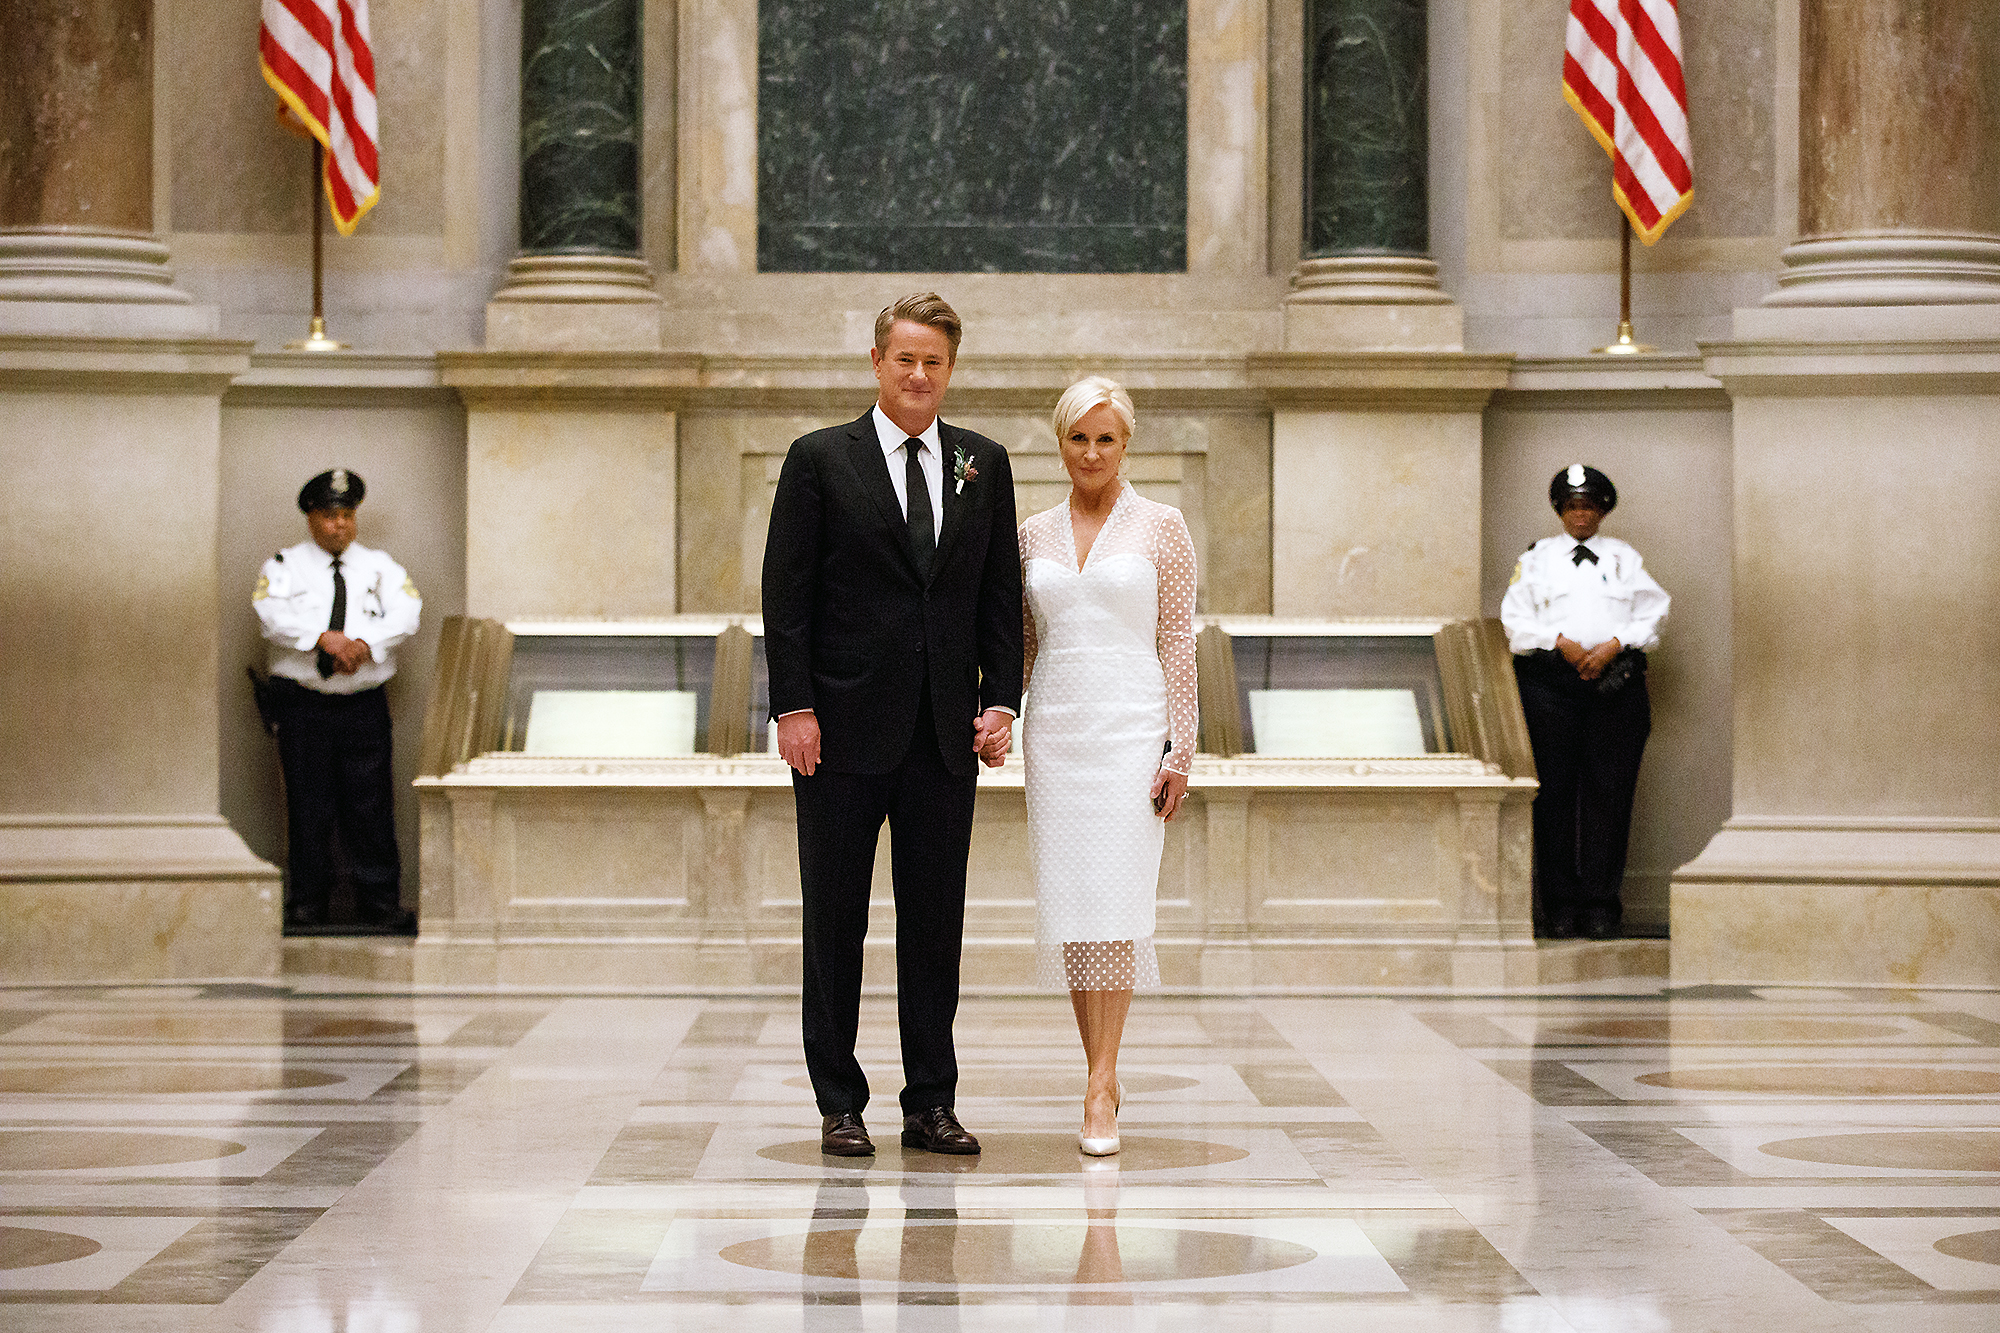 Joe Scarborough Mika Brzezinski Married - The Morning Joe cohosts married in an intimate ceremony at the National Archives in Washington D.C. on November 24. The pair, who got engaged in France in May 2017, were wed by Representative Elijah Cummings of Maryland, who officiated the ceremony written by the bride and groom.